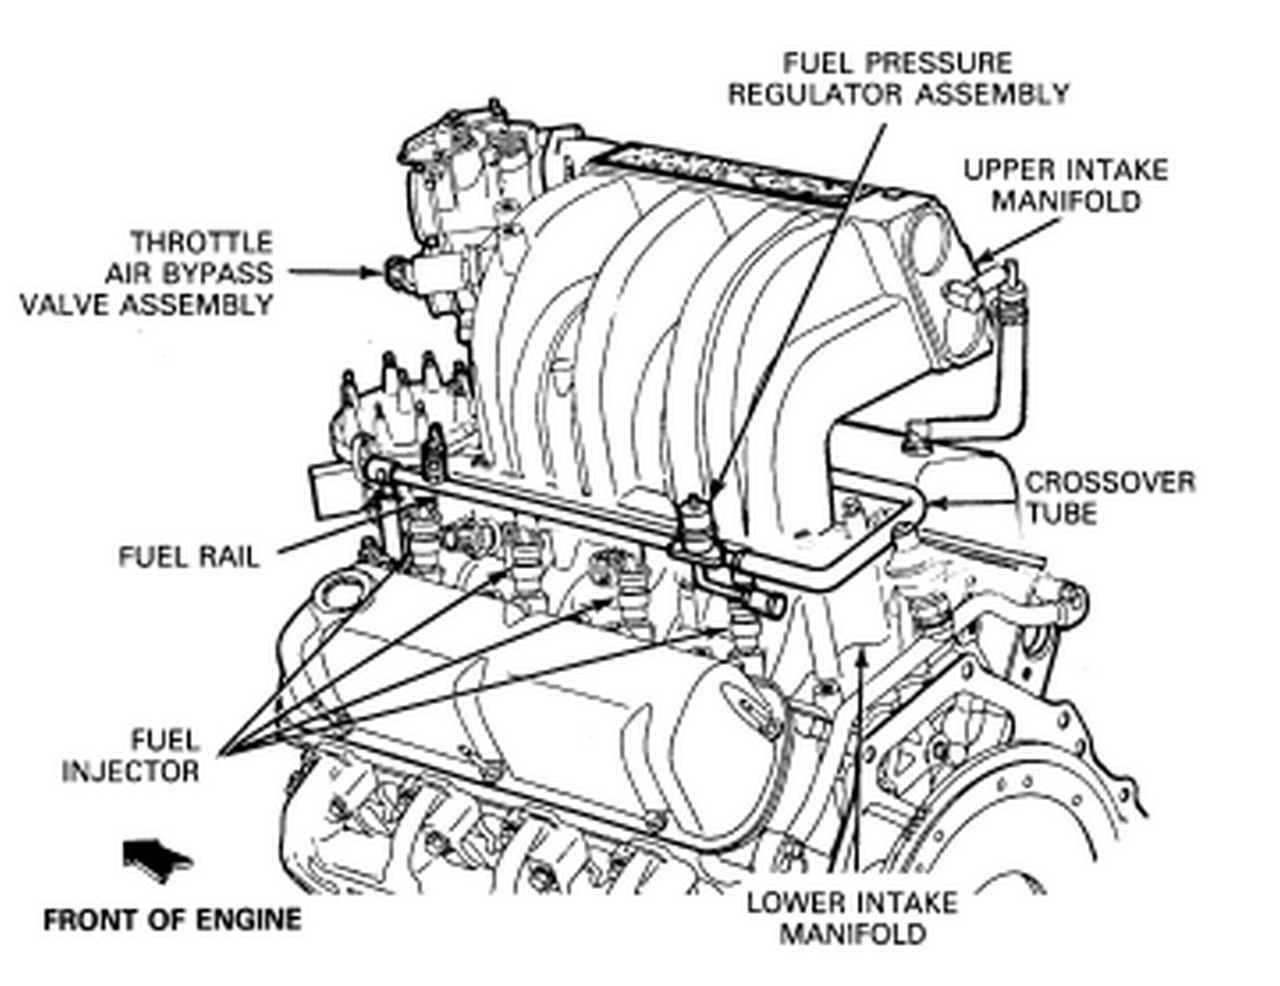 hight resolution of ford fuel pressure diagram wiring diagram article review2002 ford explorer fuel system diagram wiring diagram expert